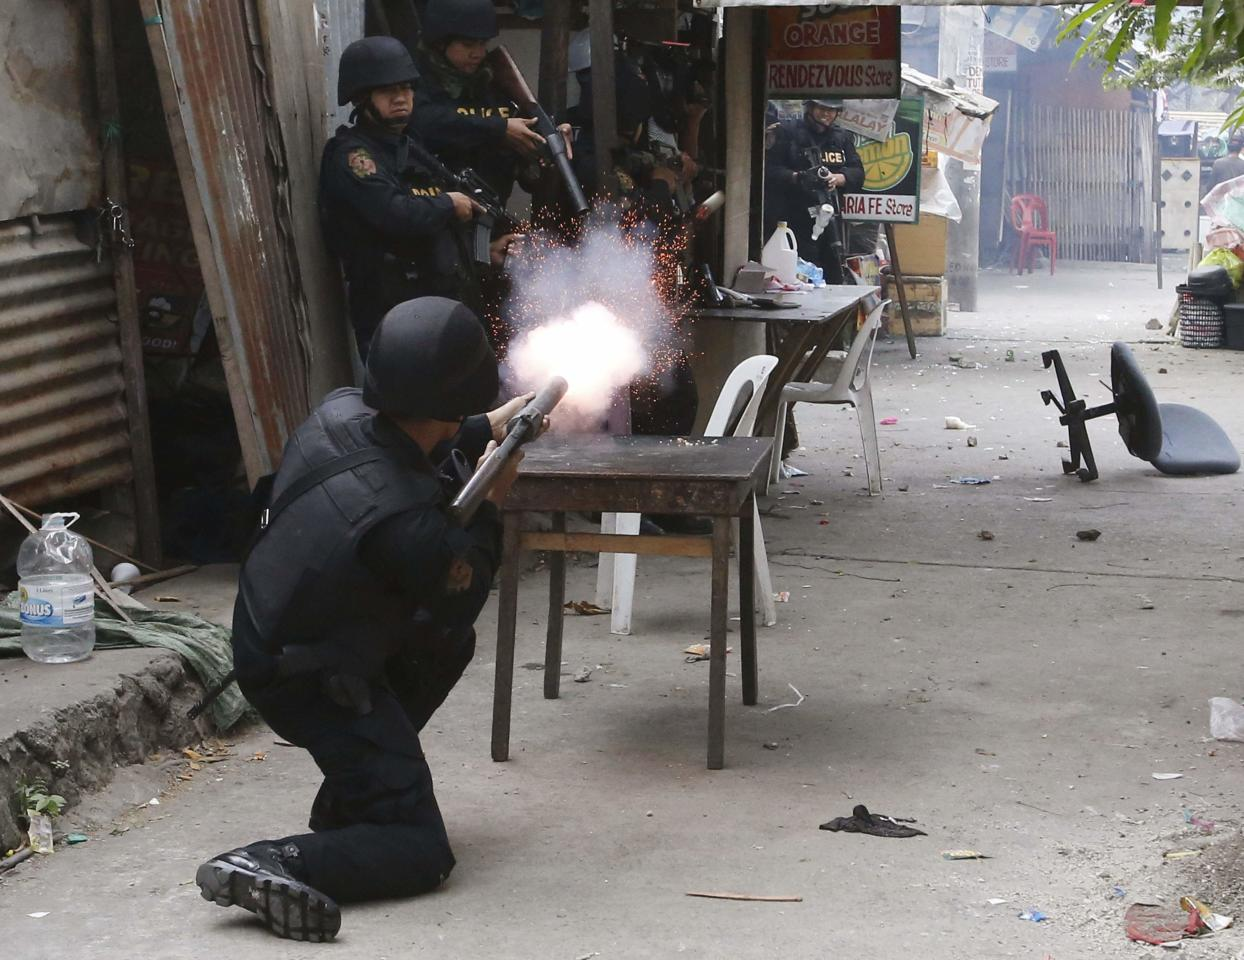 REFILE - REMOVING EXTRANEOUS WORD